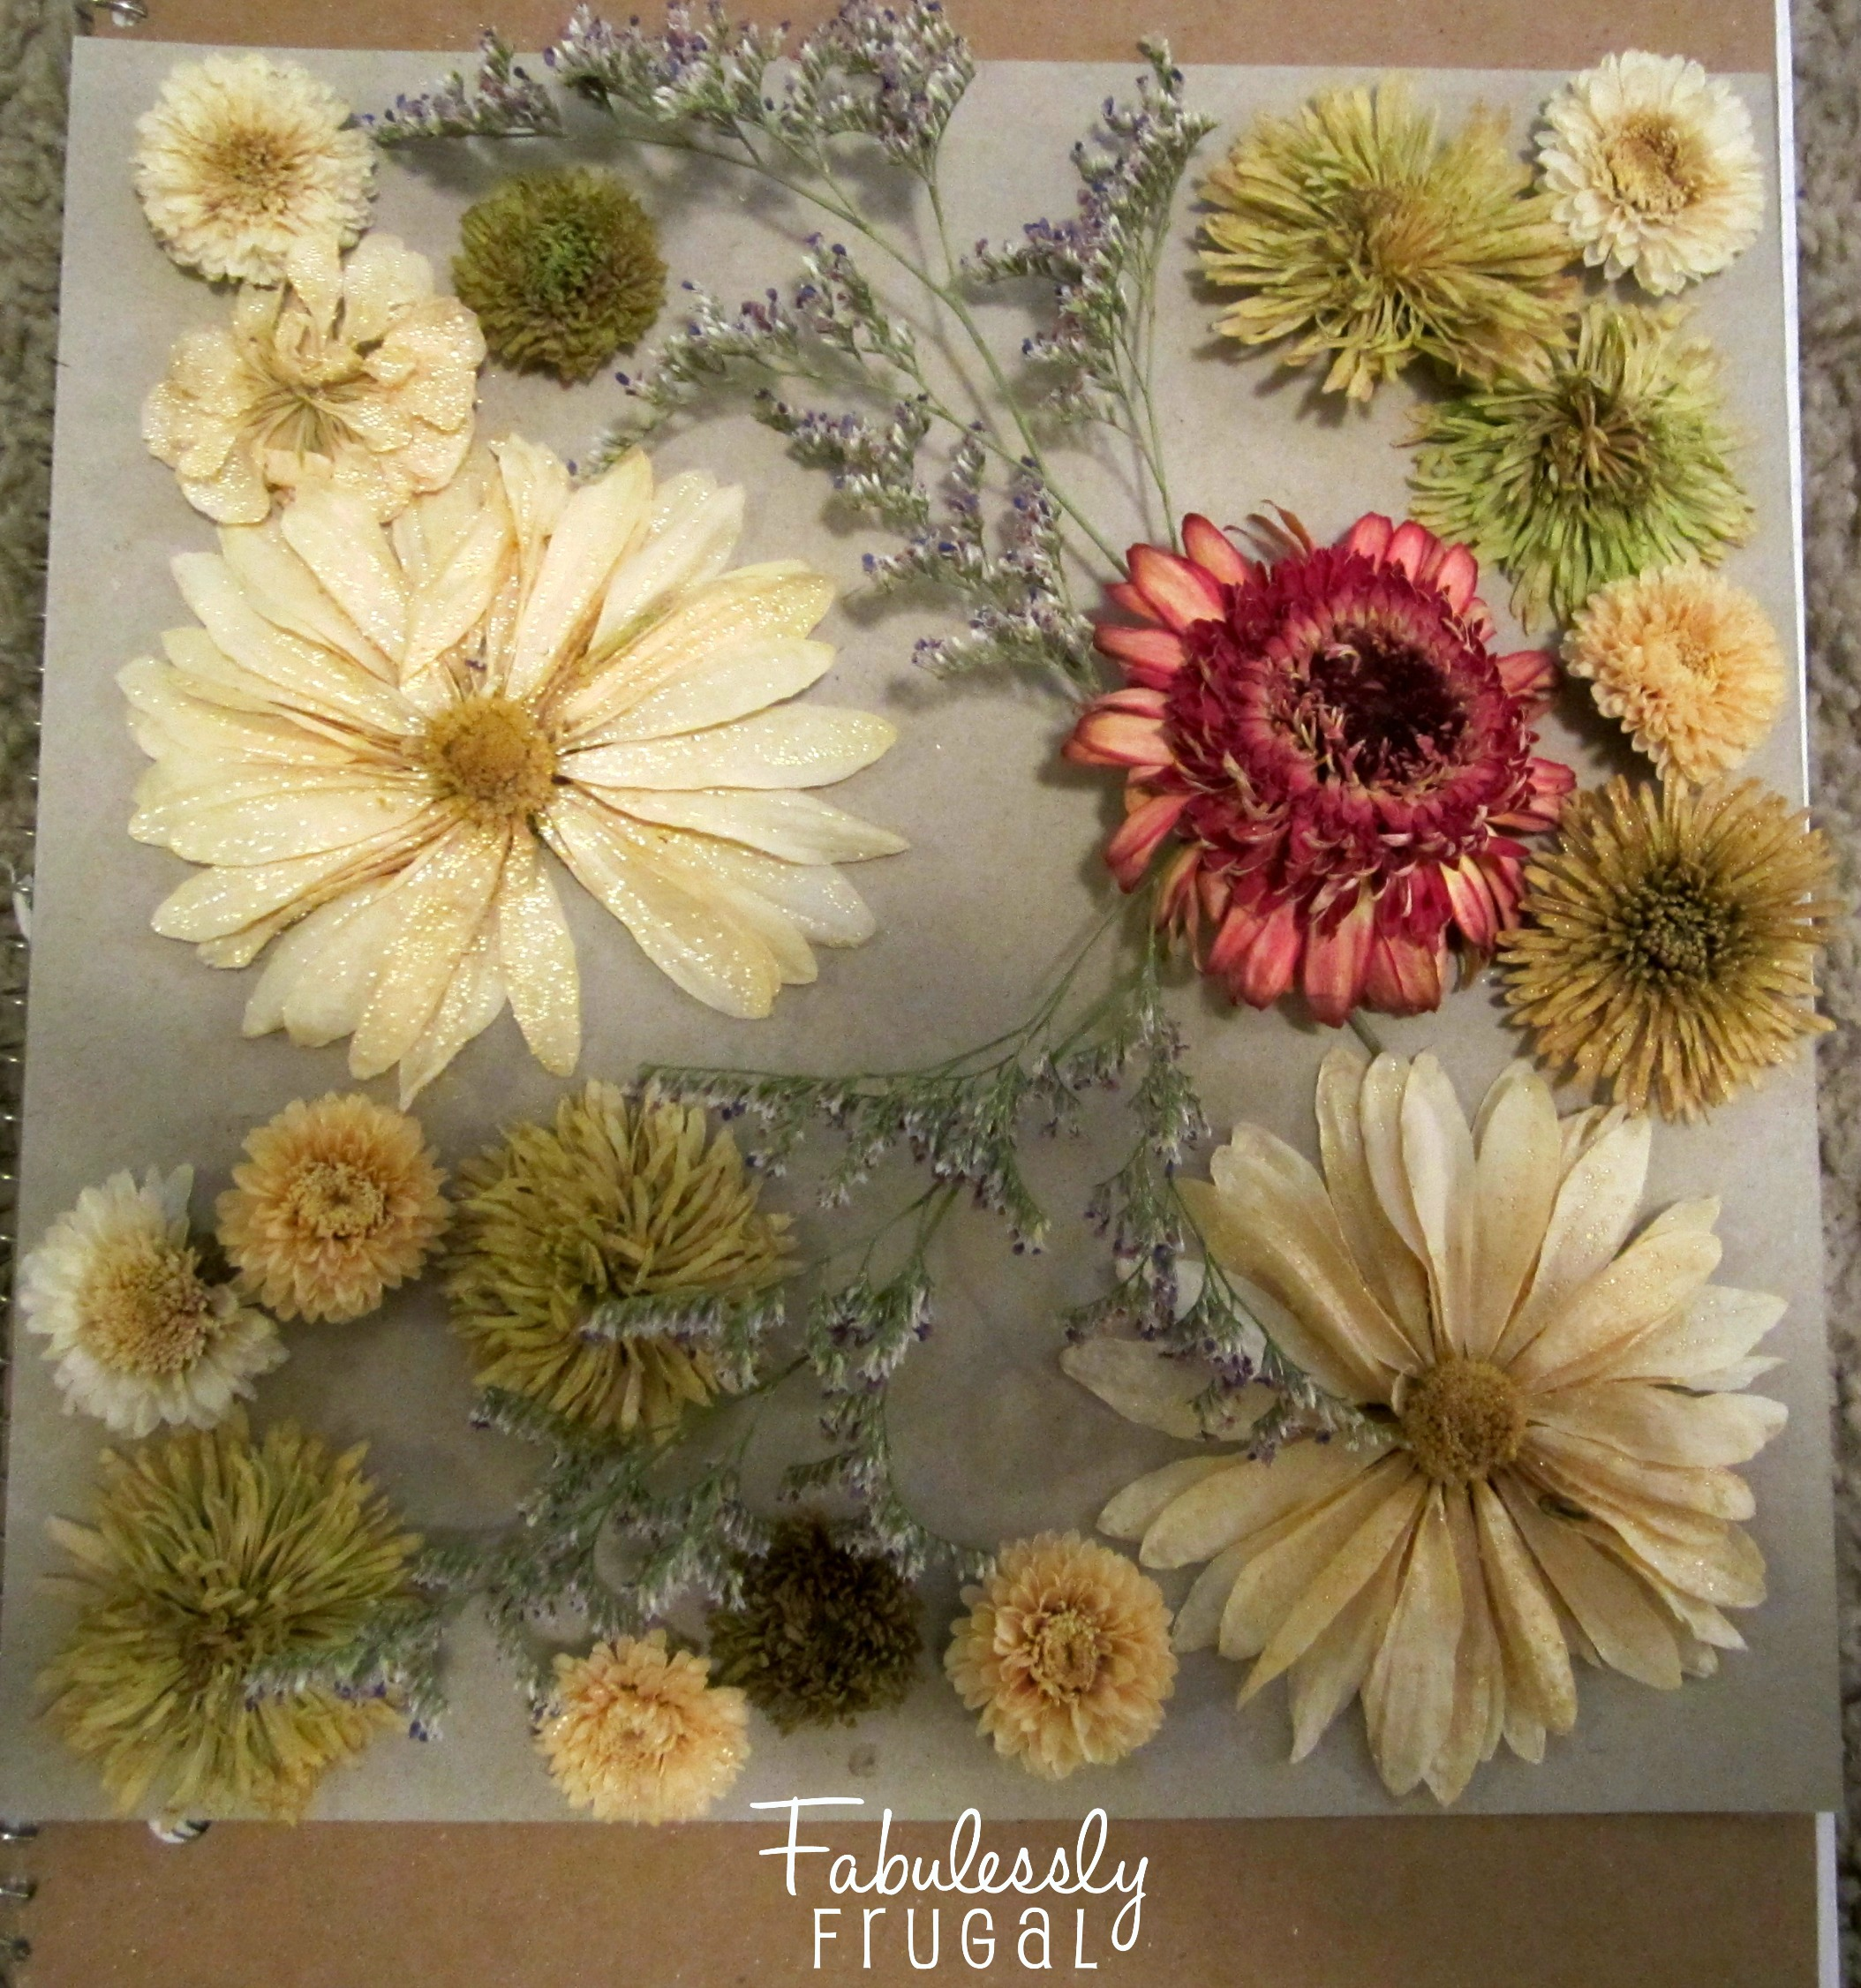 Do a dry fit layout of the flowers before beginning to glue make sure the flowers are not placed too close to the edge of the backing otherwise they will